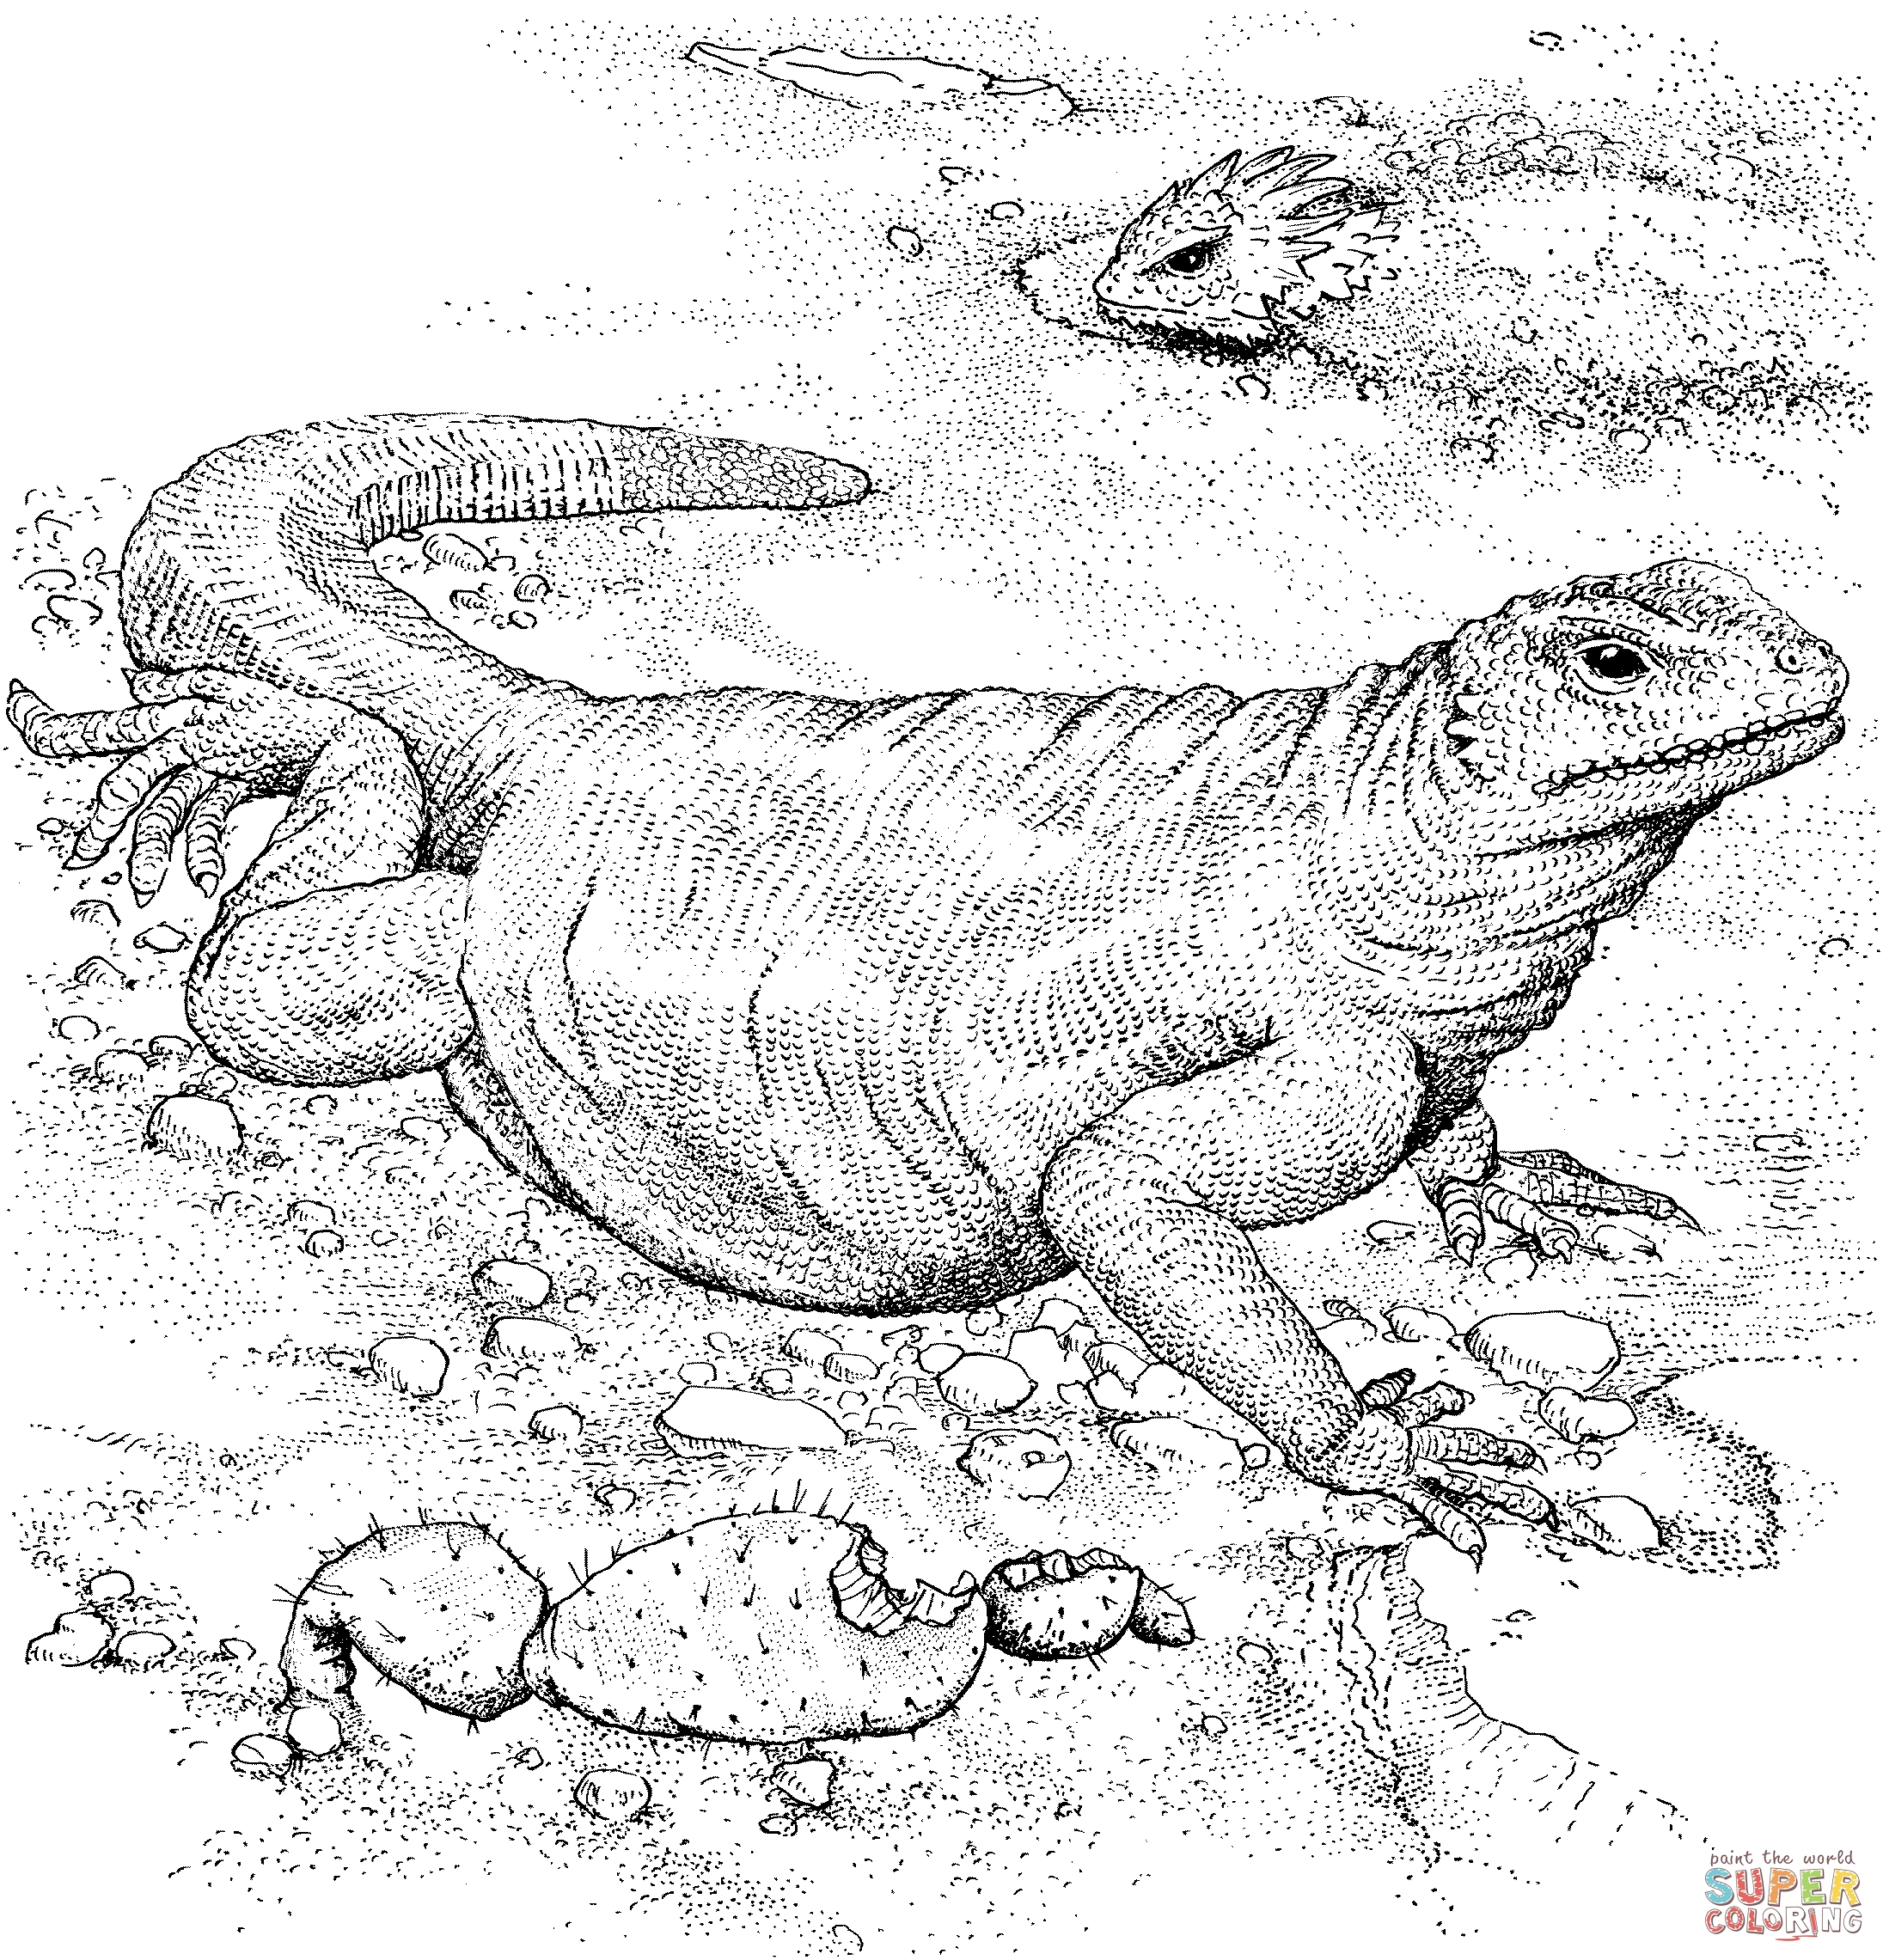 komodo dragon coloring page - komodo dragon